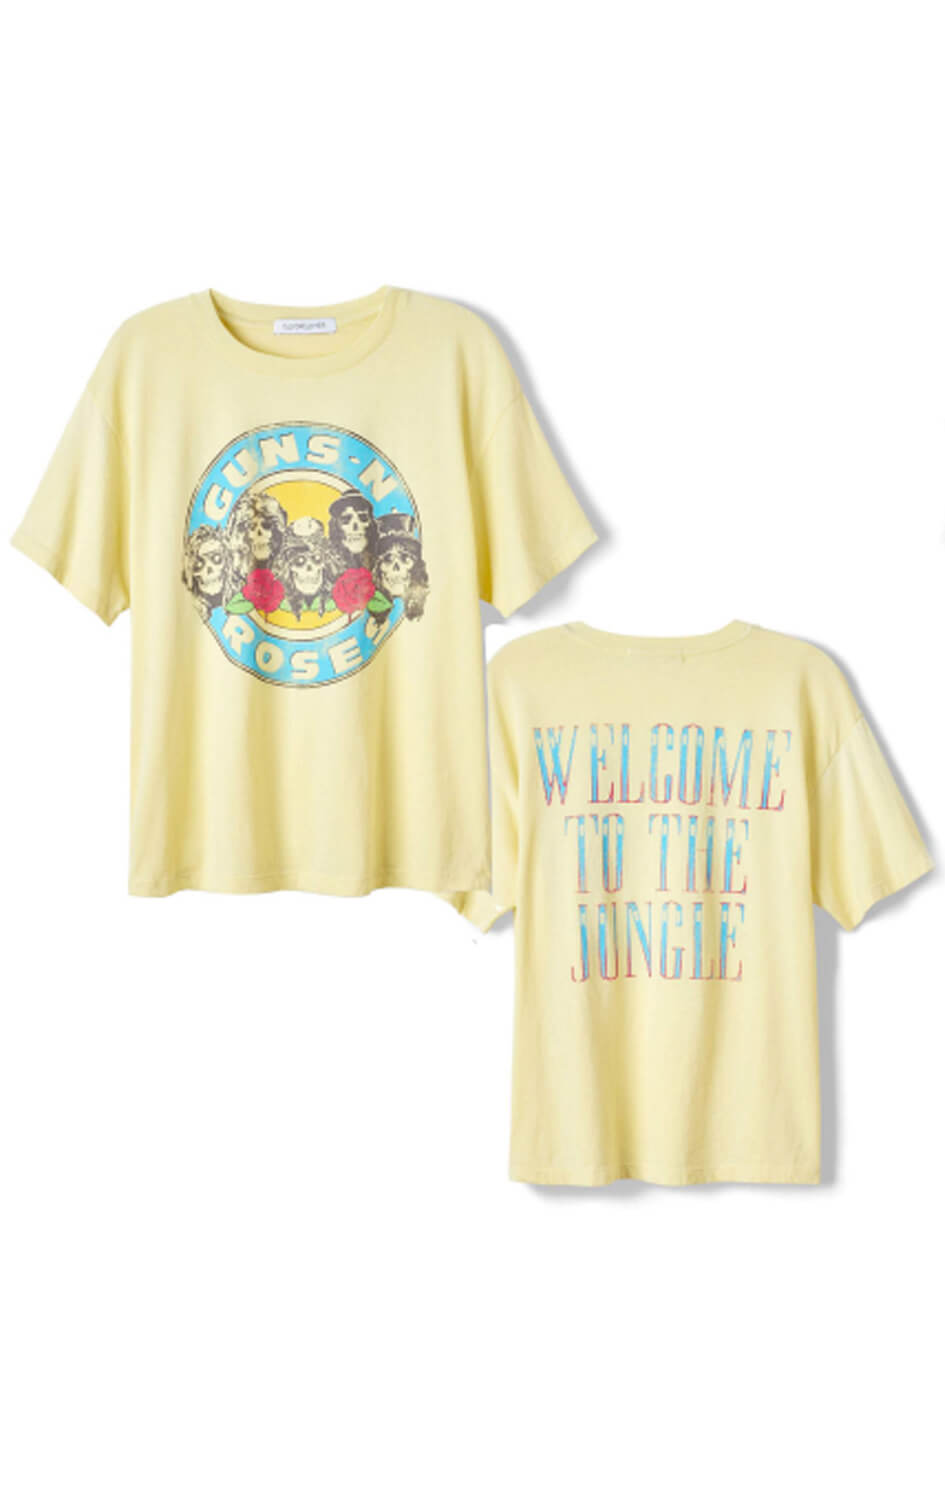 shop-dana-scott-daydreamer-pale-yellow-guns-roses-welcome-to-the-jungle-graphic-tee